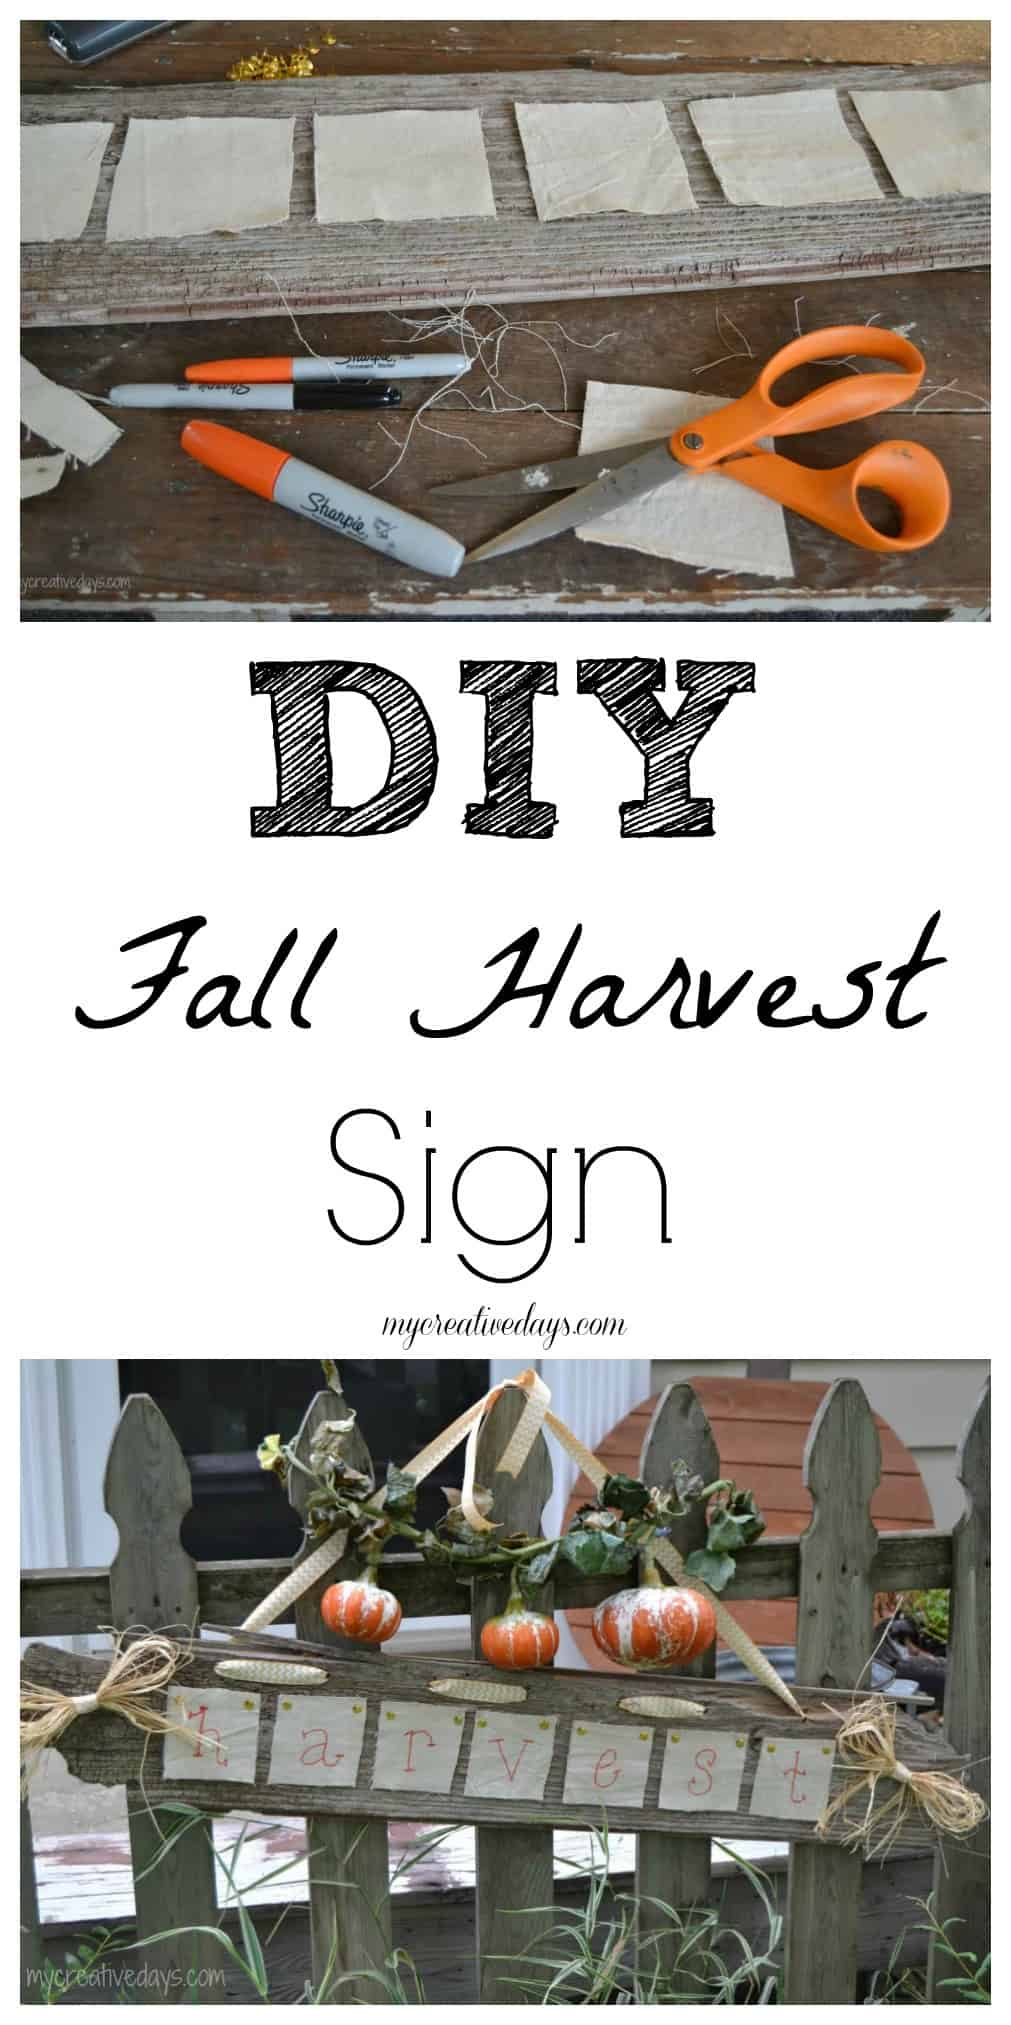 Harvest Sign On Barnwood For Fall Front Porch Decor: DIY Harvest Sign Made From Reclaimed Pieces And Left Over